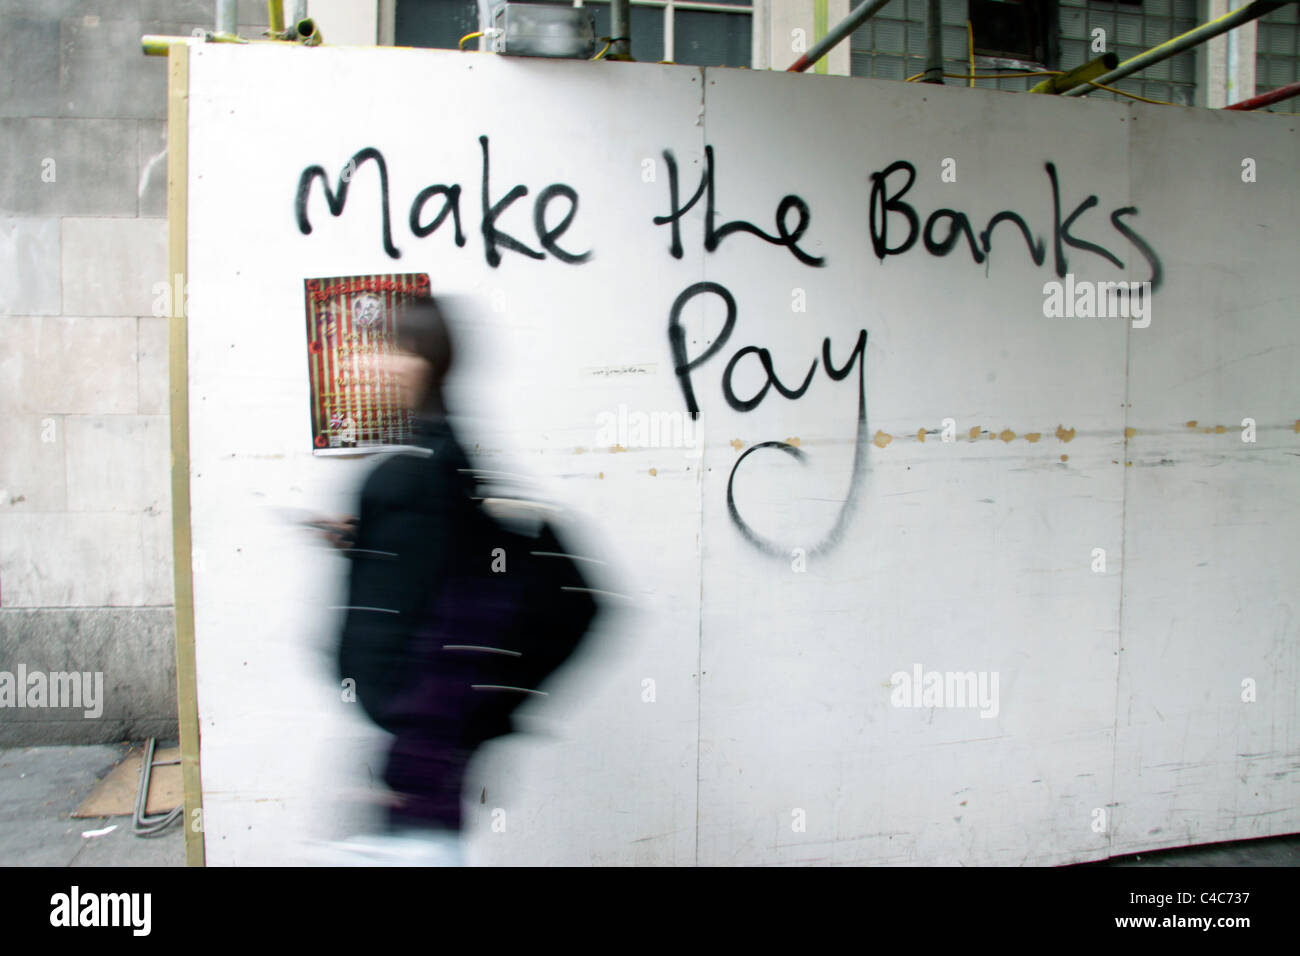 Woman walking past anti-capitalist graffiti in London demanding the banks pay for the national deficit - Stock Image